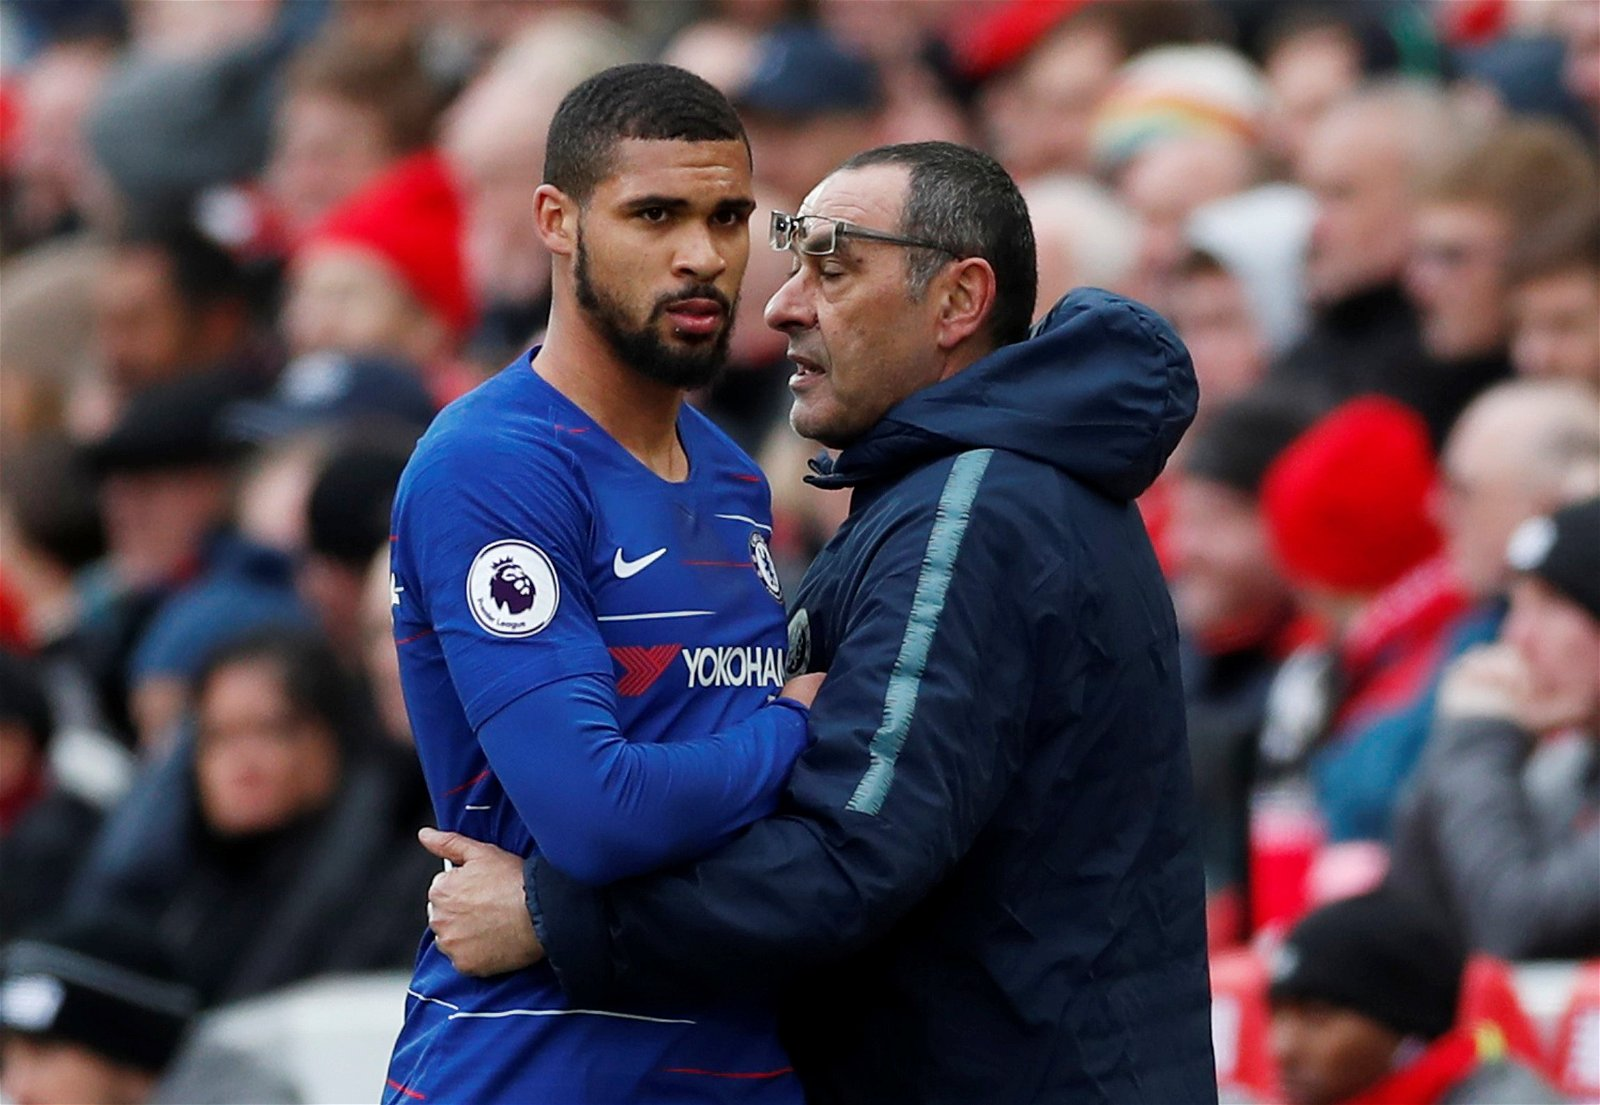 2019 04 14T170832Z 610735329 RC176A514DC0 RTRMADP 3 SOCCER ENGLAND LIV CHE - How Sarri can improve Chelsea's midfield without spending a penny this summer - opinion